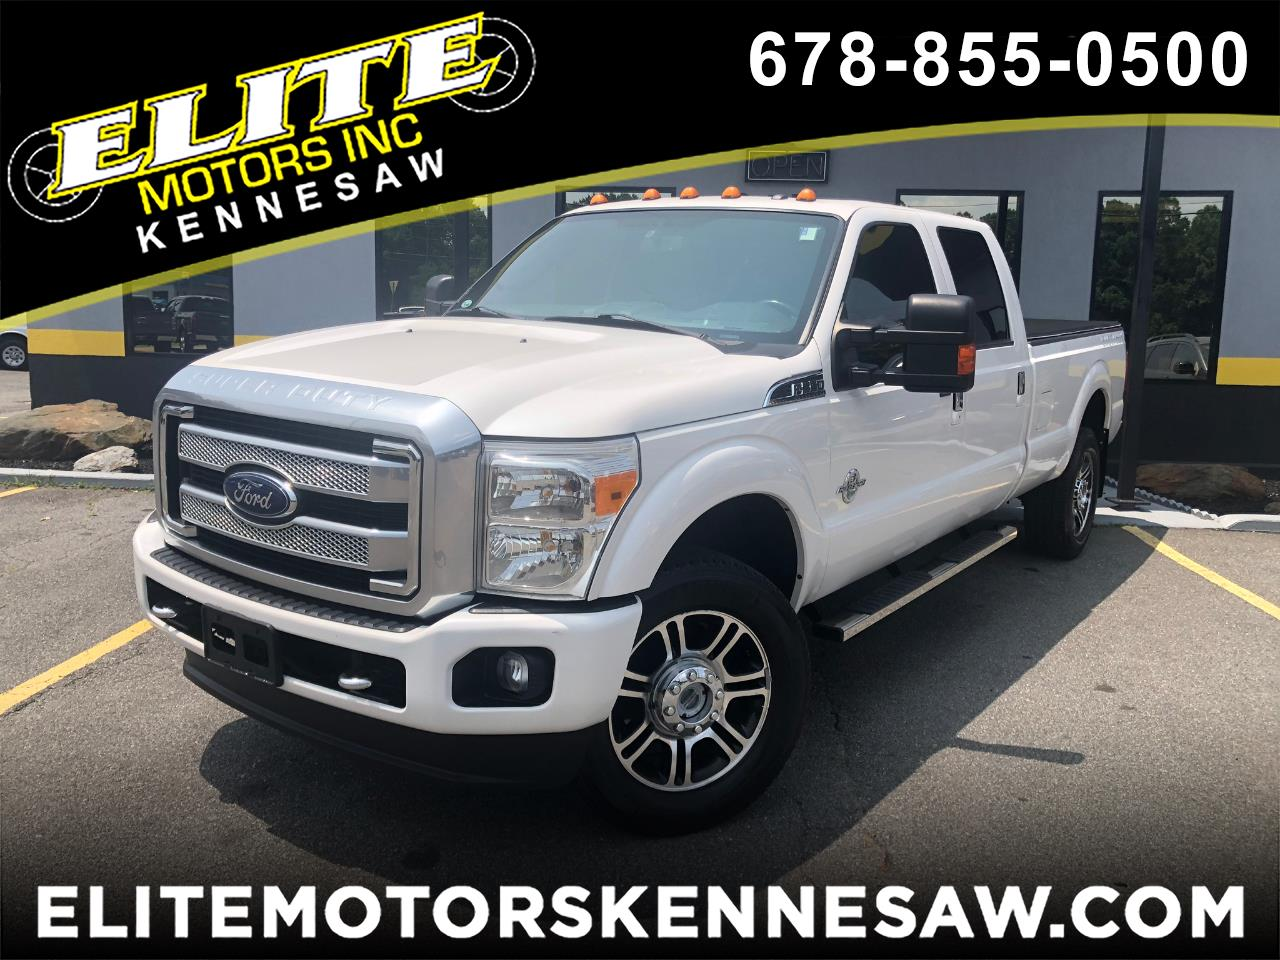 2014 Ford F-350 SD Lariat crew cab Long Bed 4WD Platinum